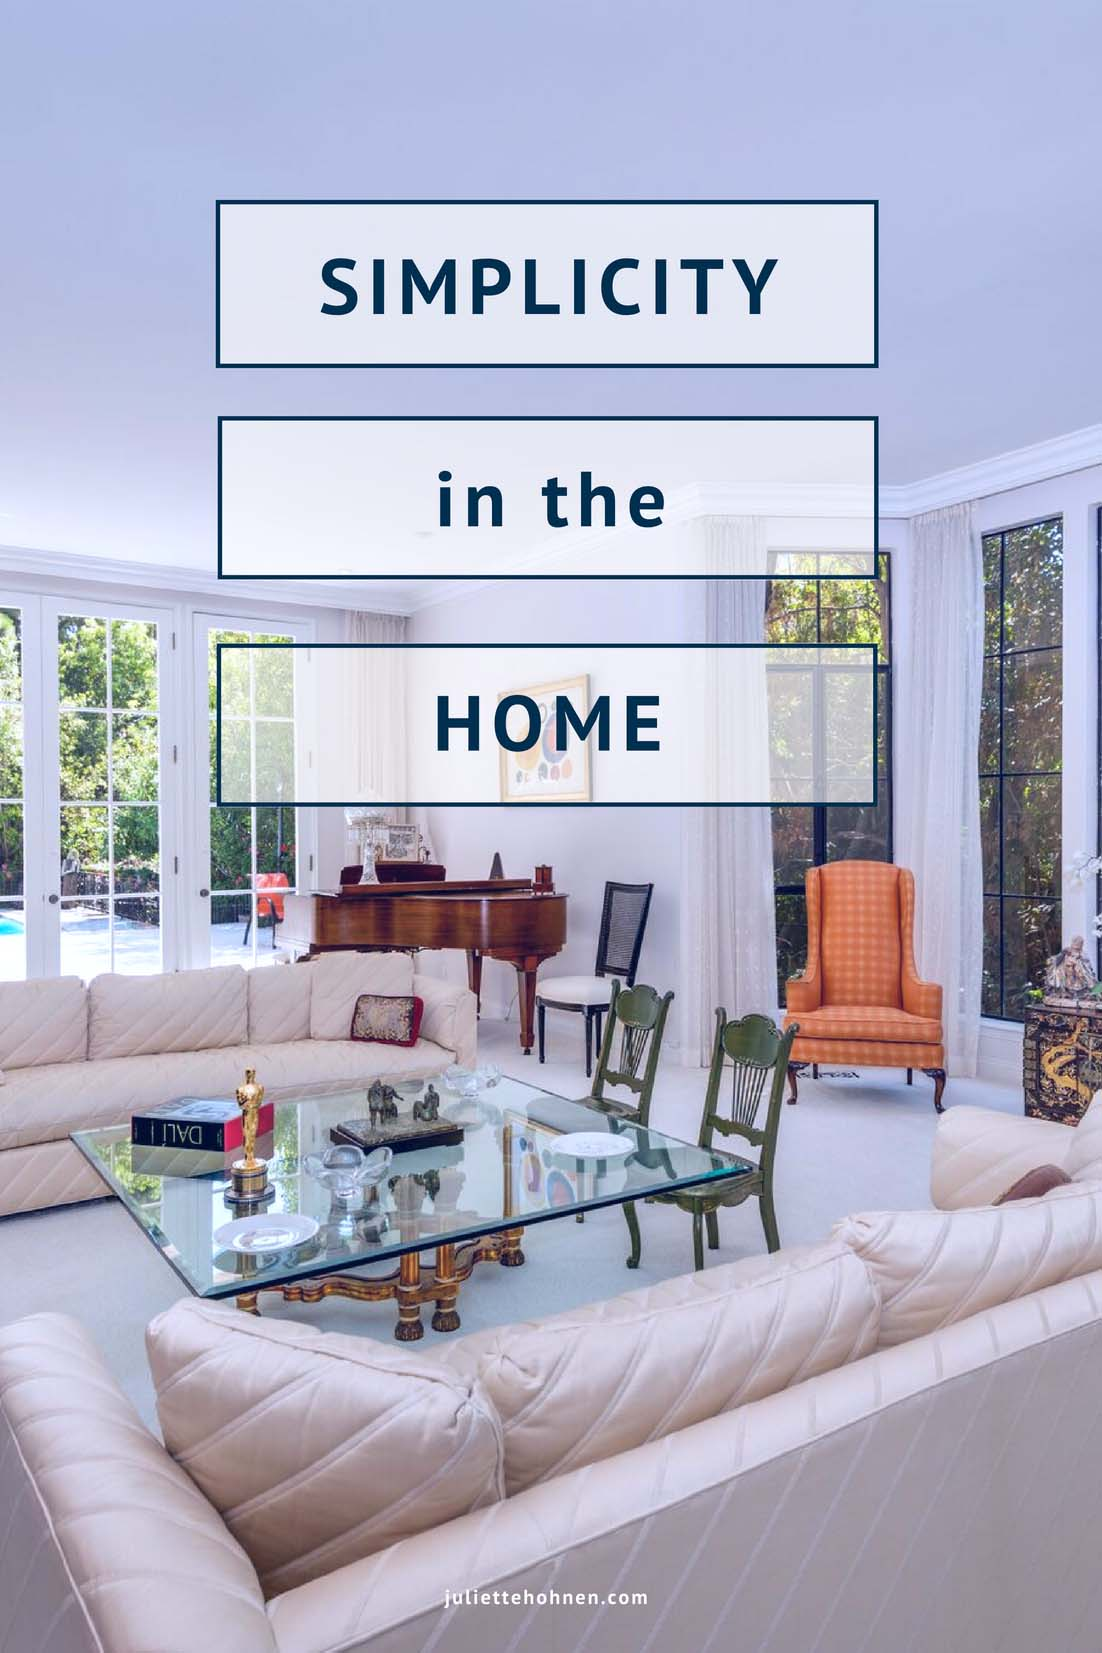 Simplicity in the Home – Less is More